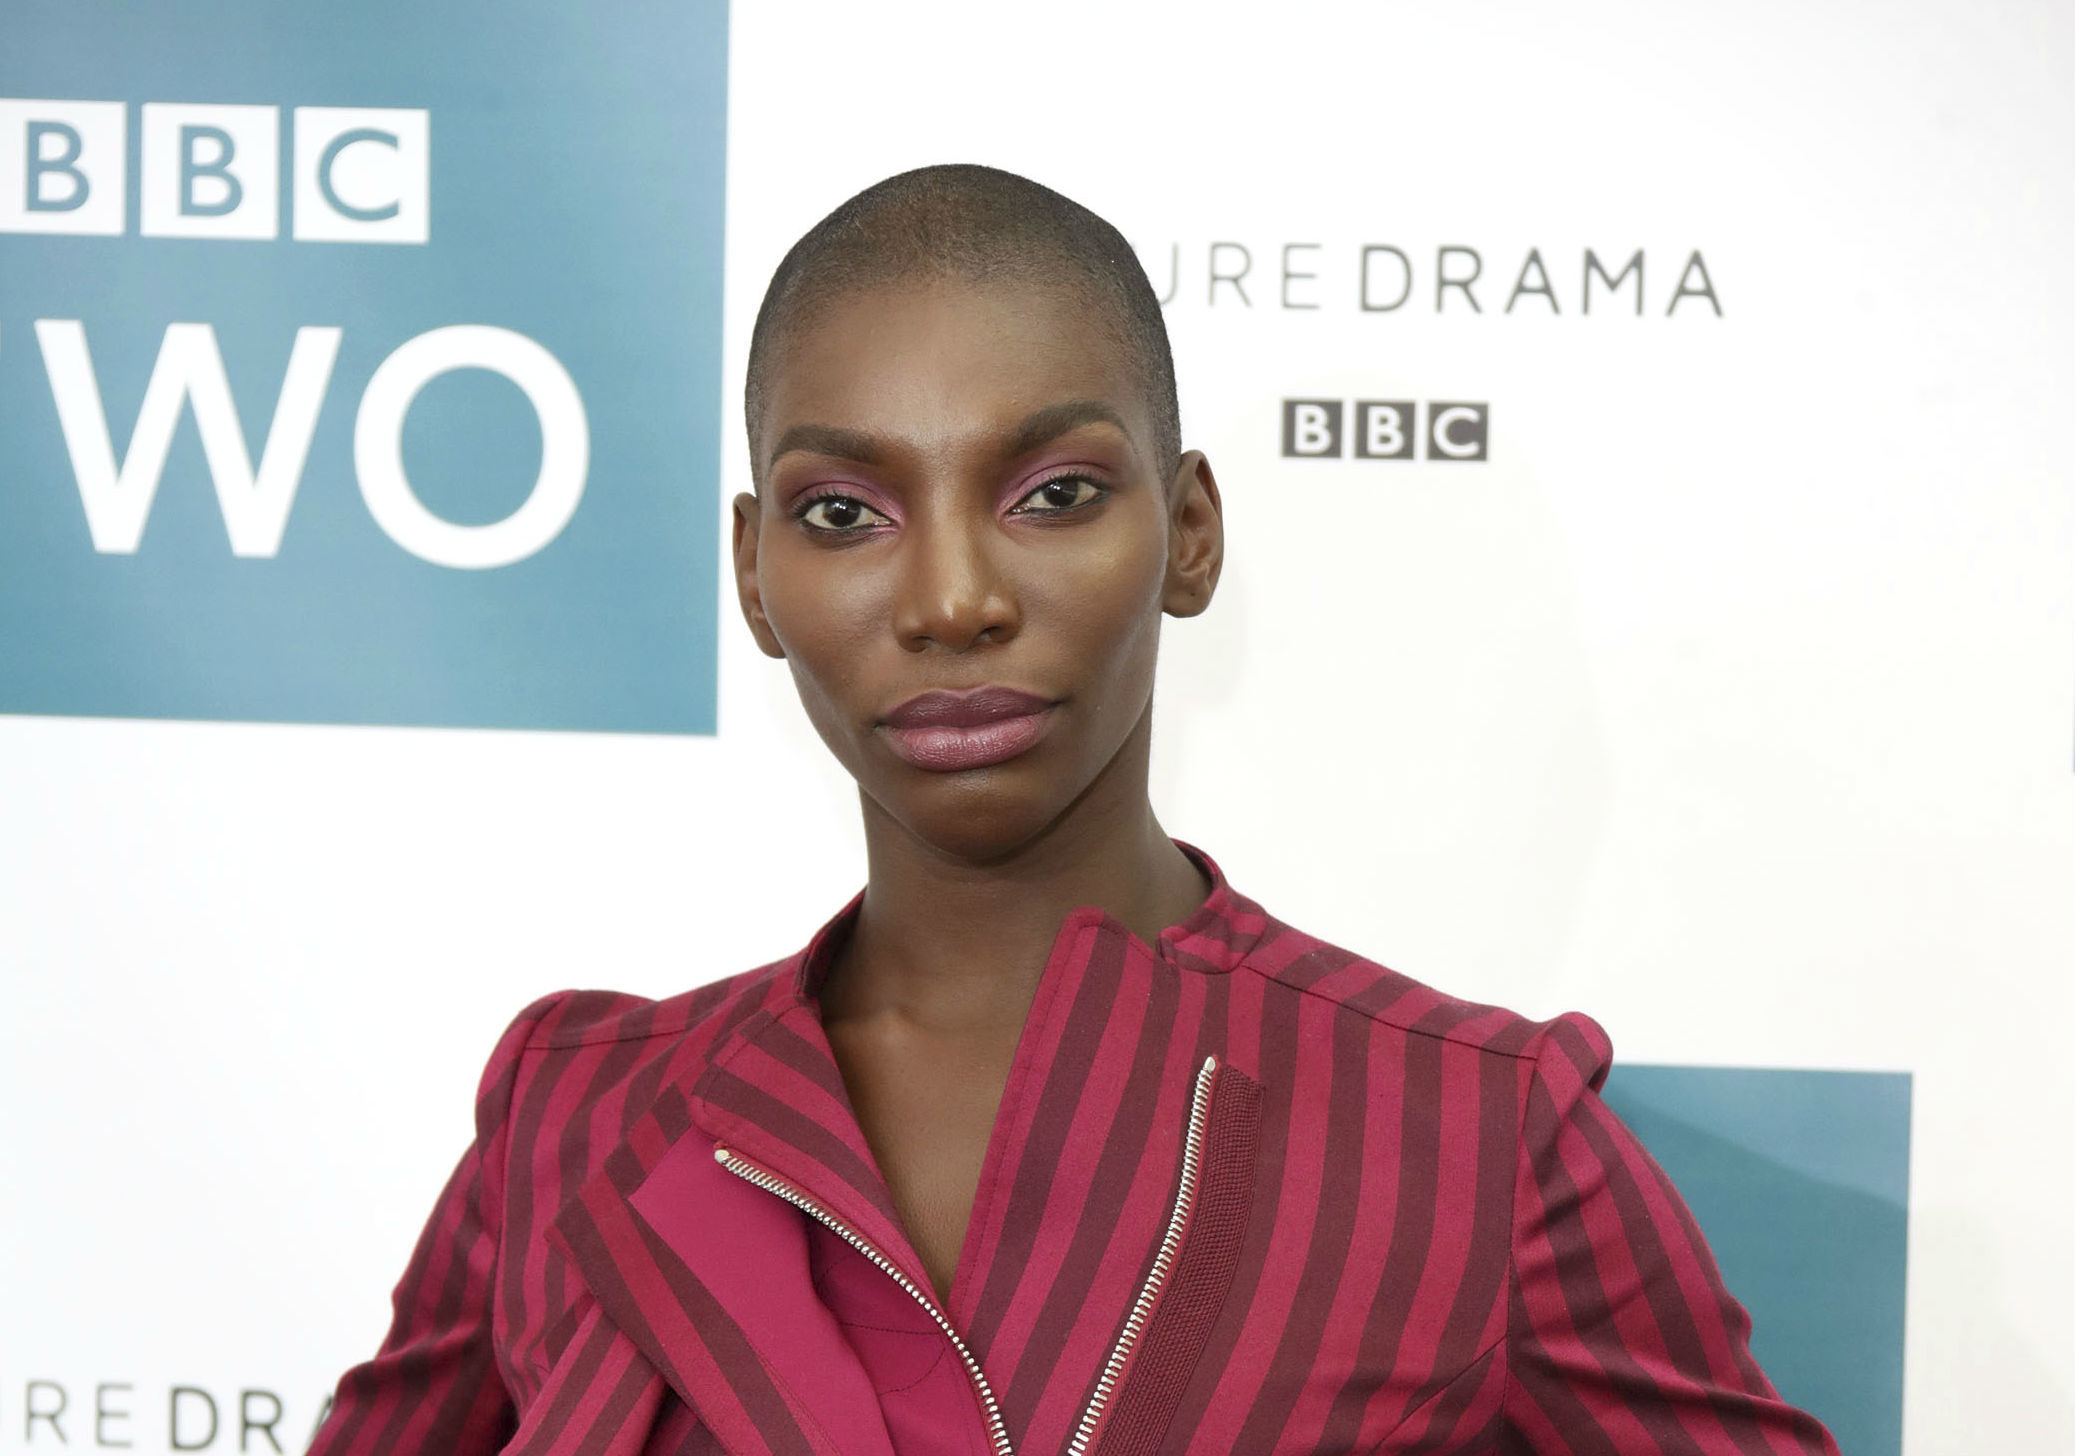 Michaela Coel DO NOT USE AGAIN